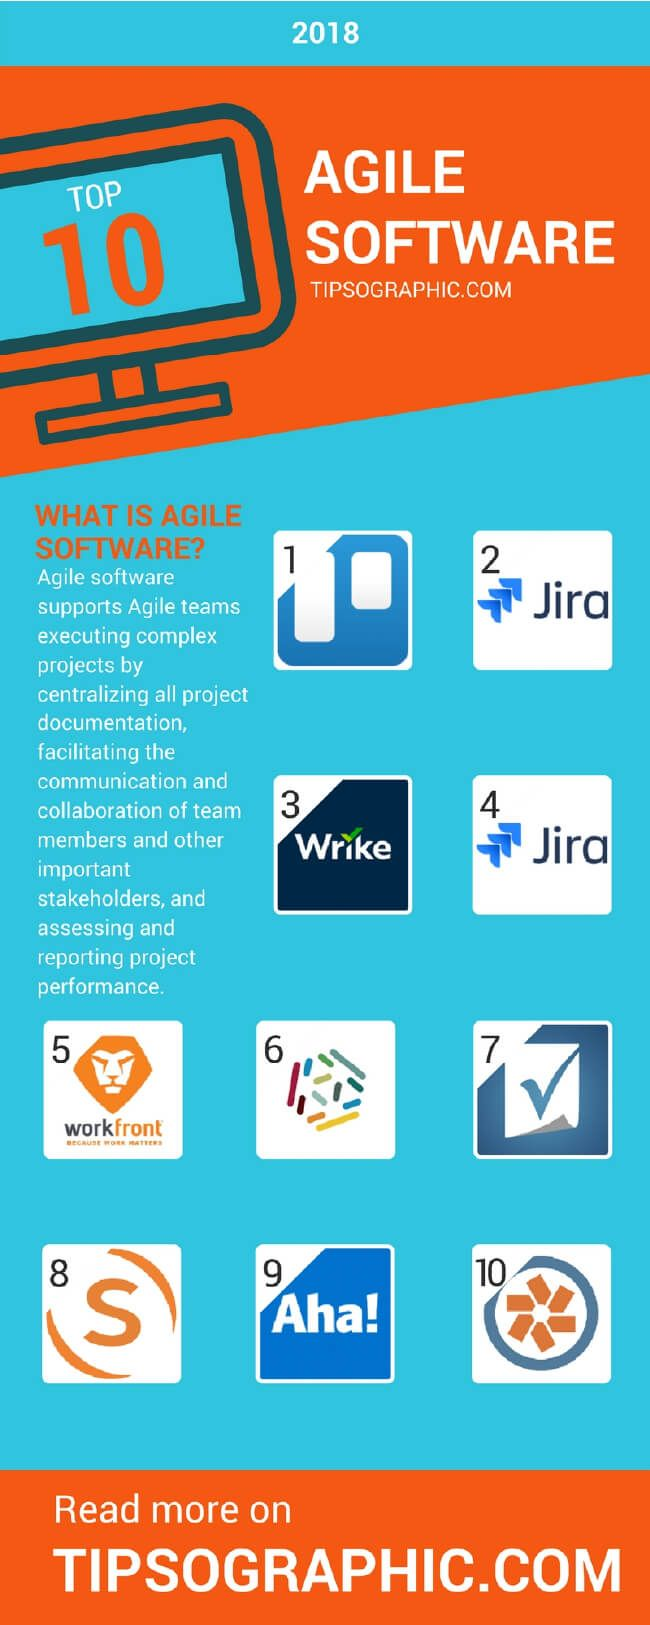 Image titled agile software 2018 best systems